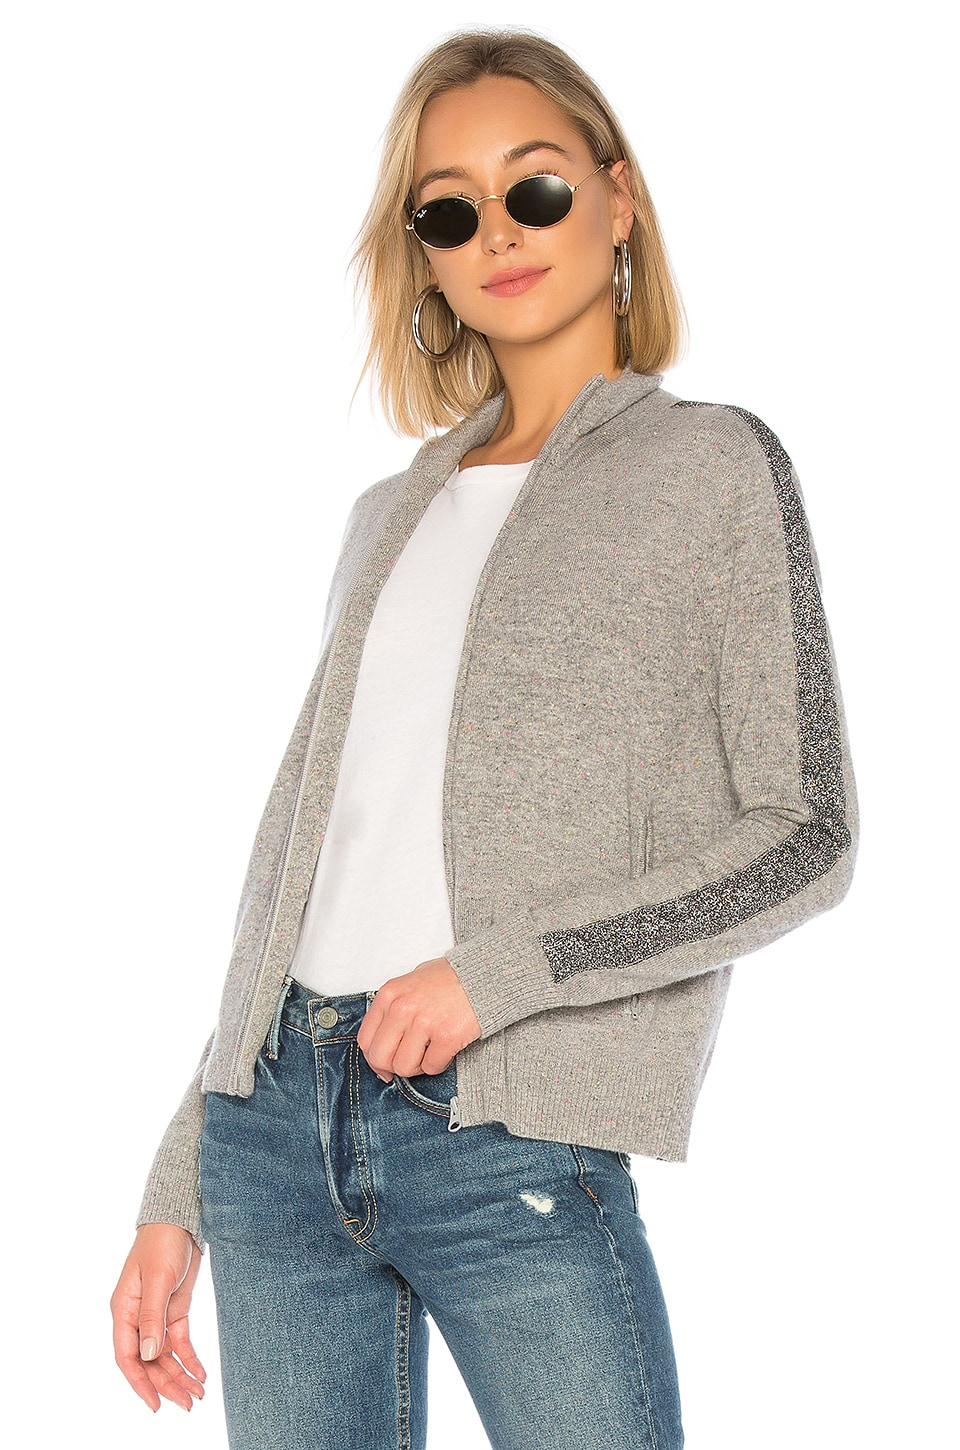 REPLICA LOS ANGELES Lurex Stripe Track Jacket in Gray